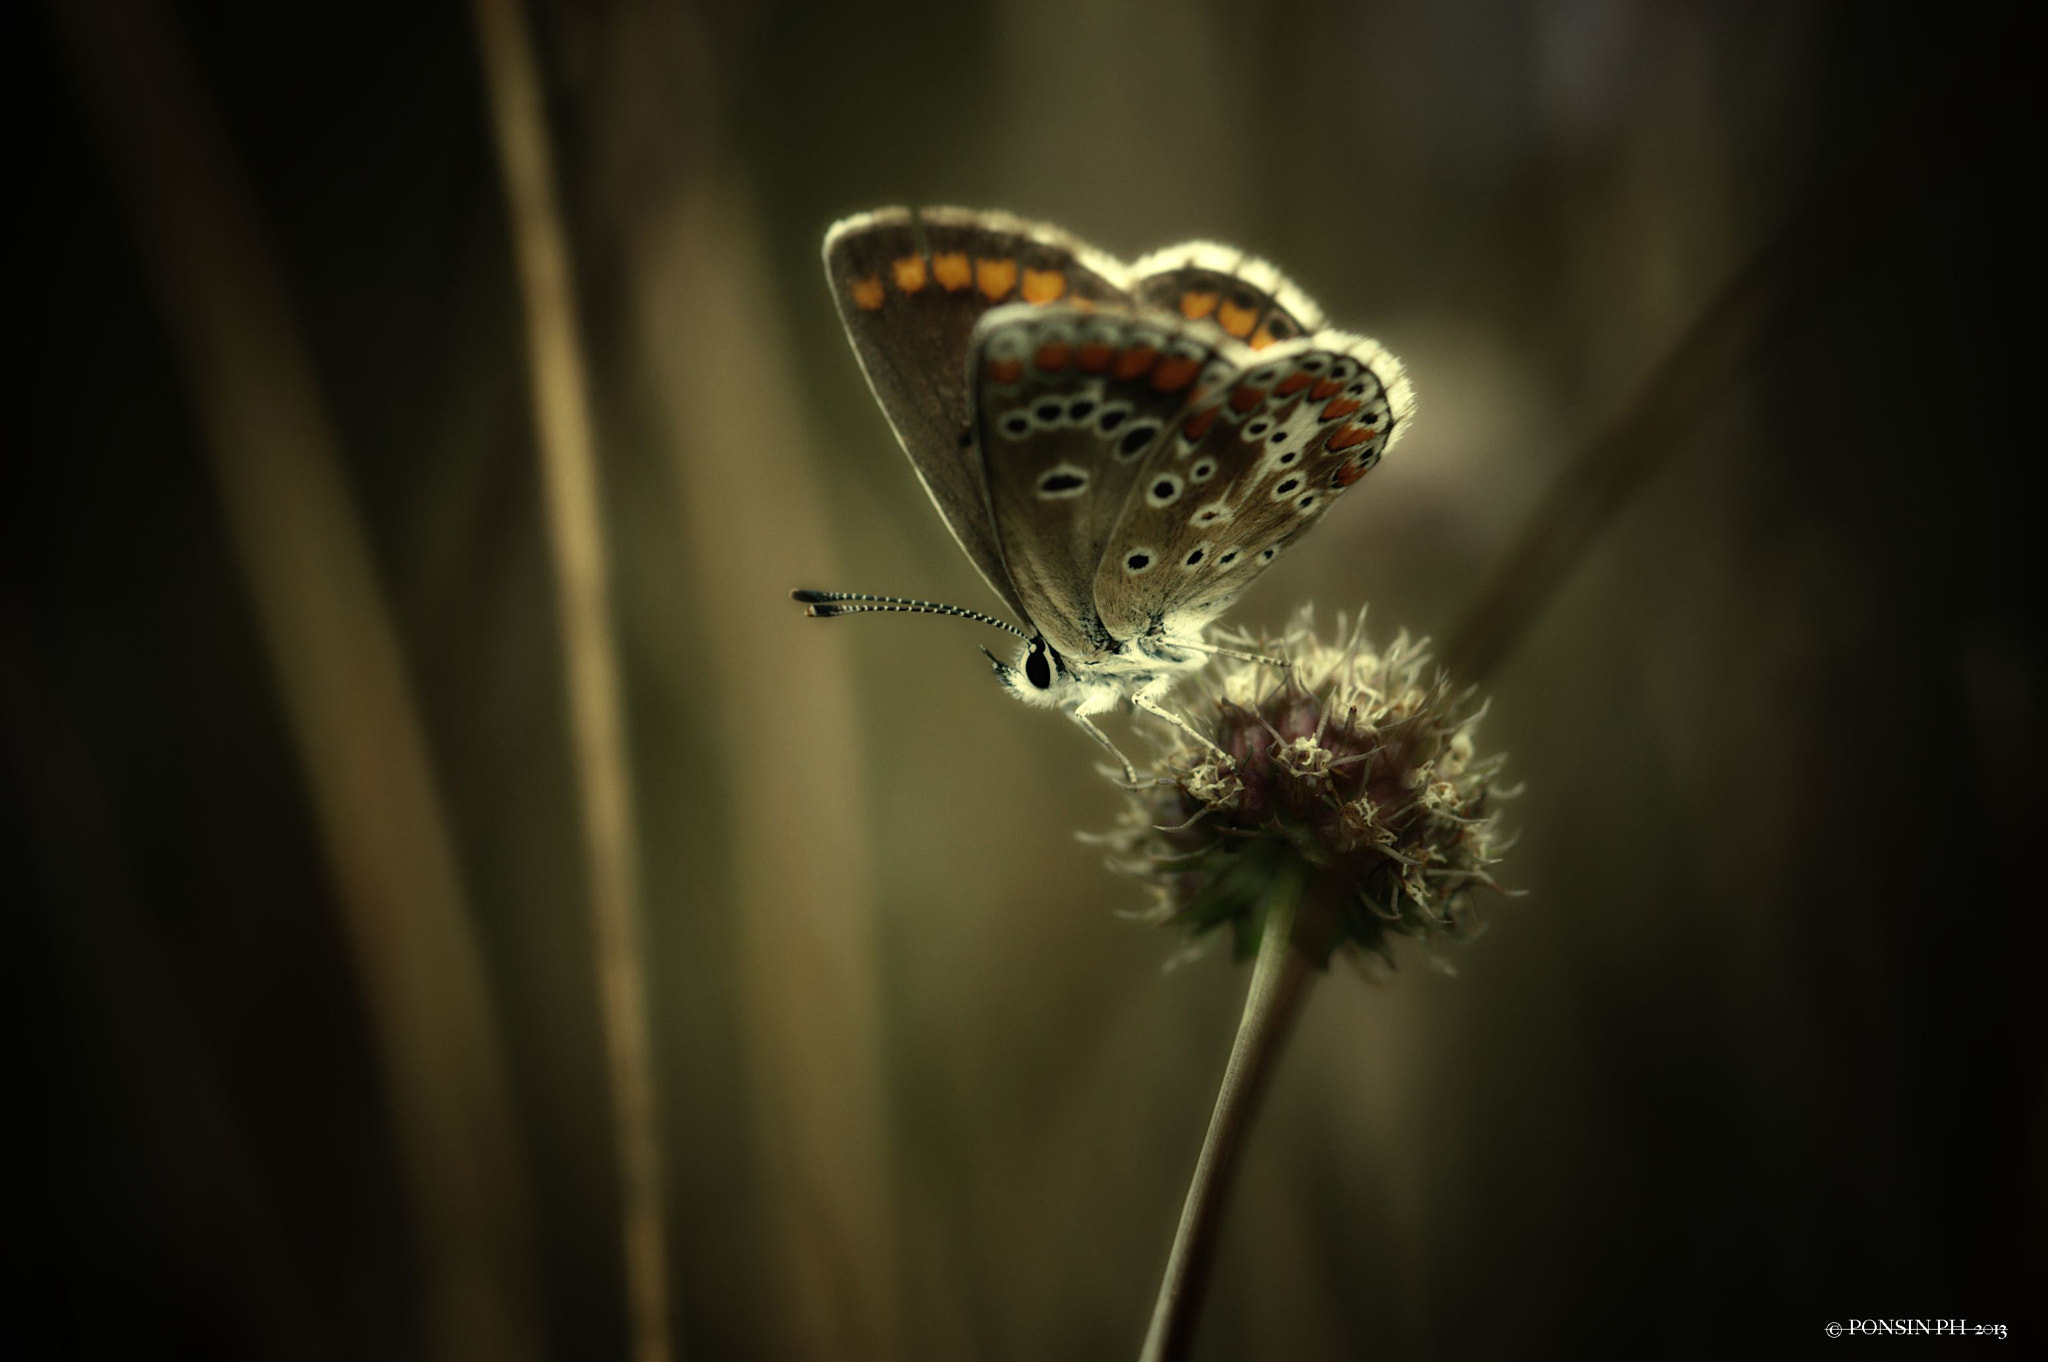 Photograph Butterfly by Philippe PONSIN on 500px